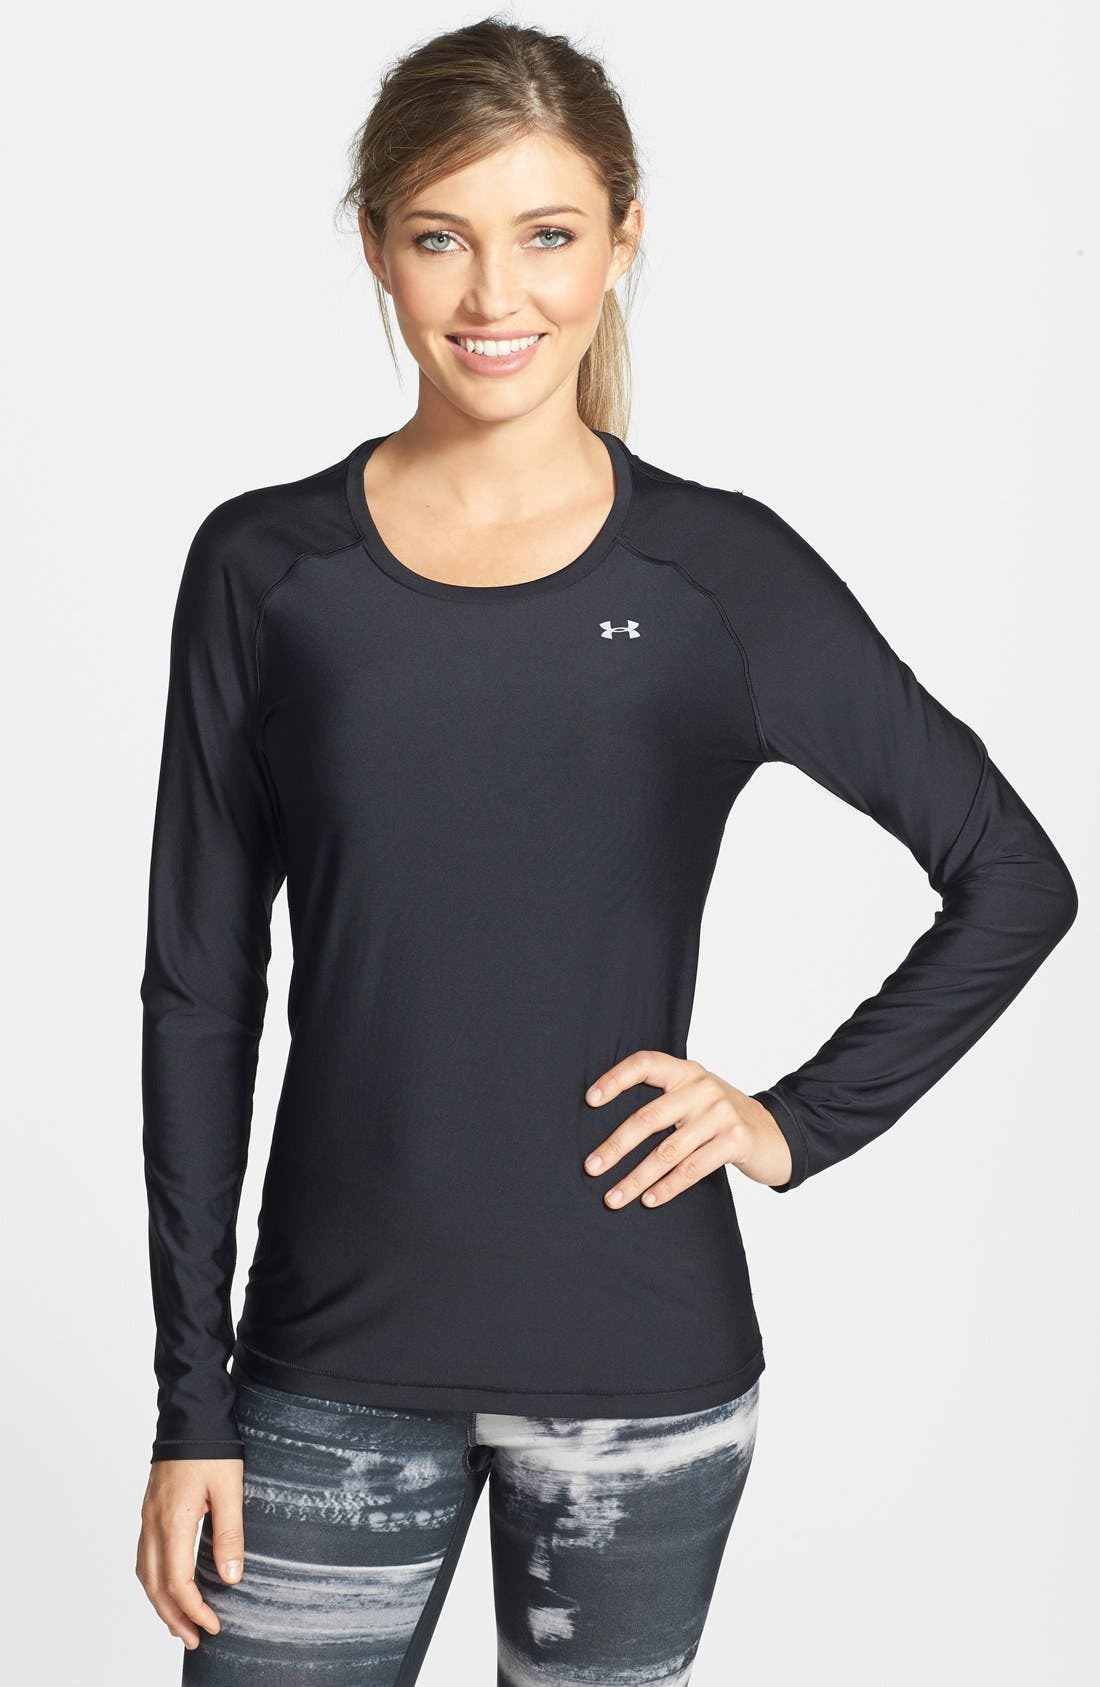 'Alpha Novelty' HeatGear<sup>®</sup> Long Sleeve Top,                             Main thumbnail 1, color,                             001